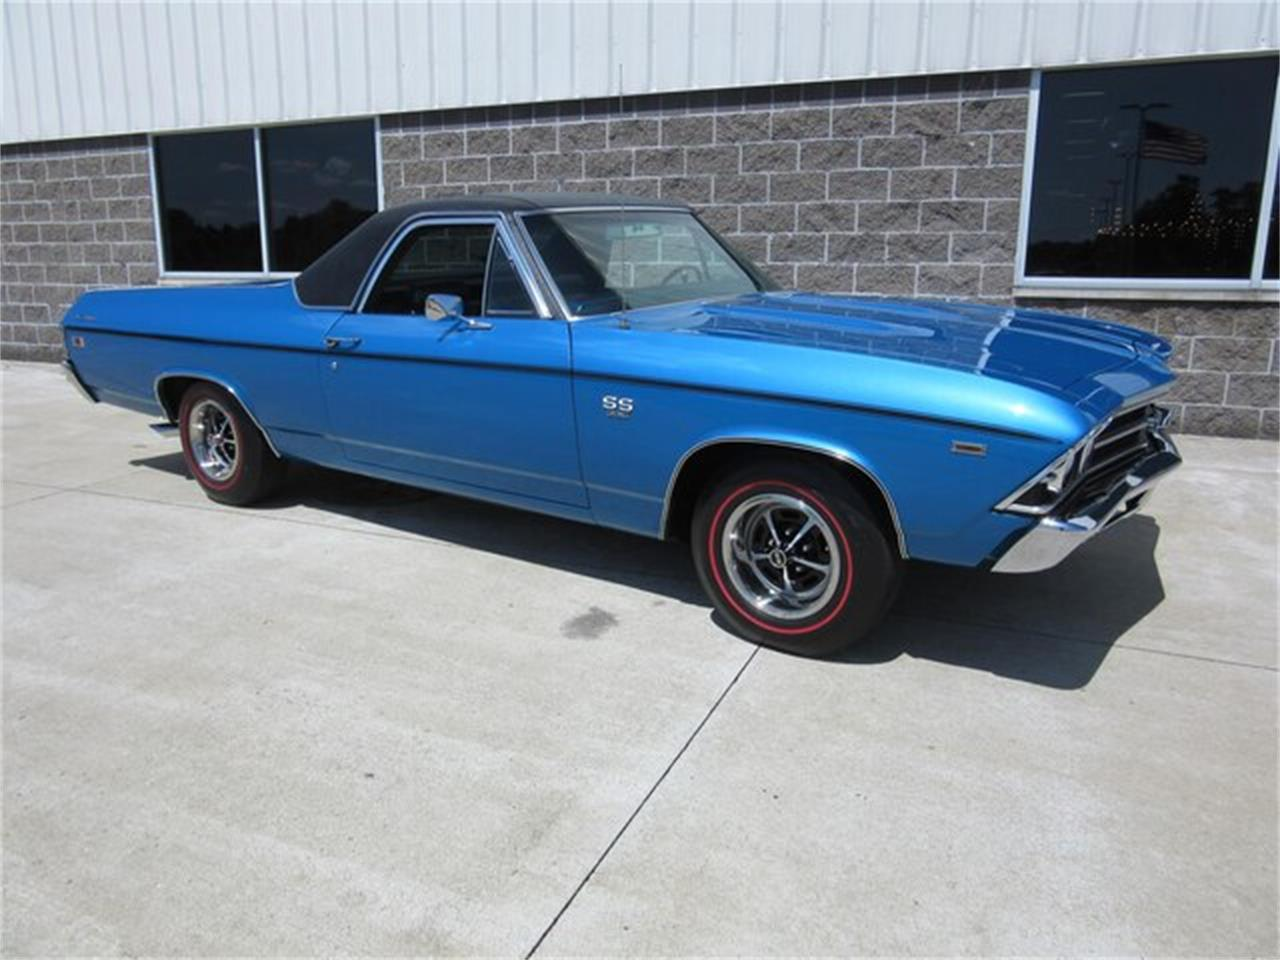 Large Picture of '69 El Camino located in Greenwood Indiana - $38,500.00 Offered by Ray Skillman Classic Cars - QTRB